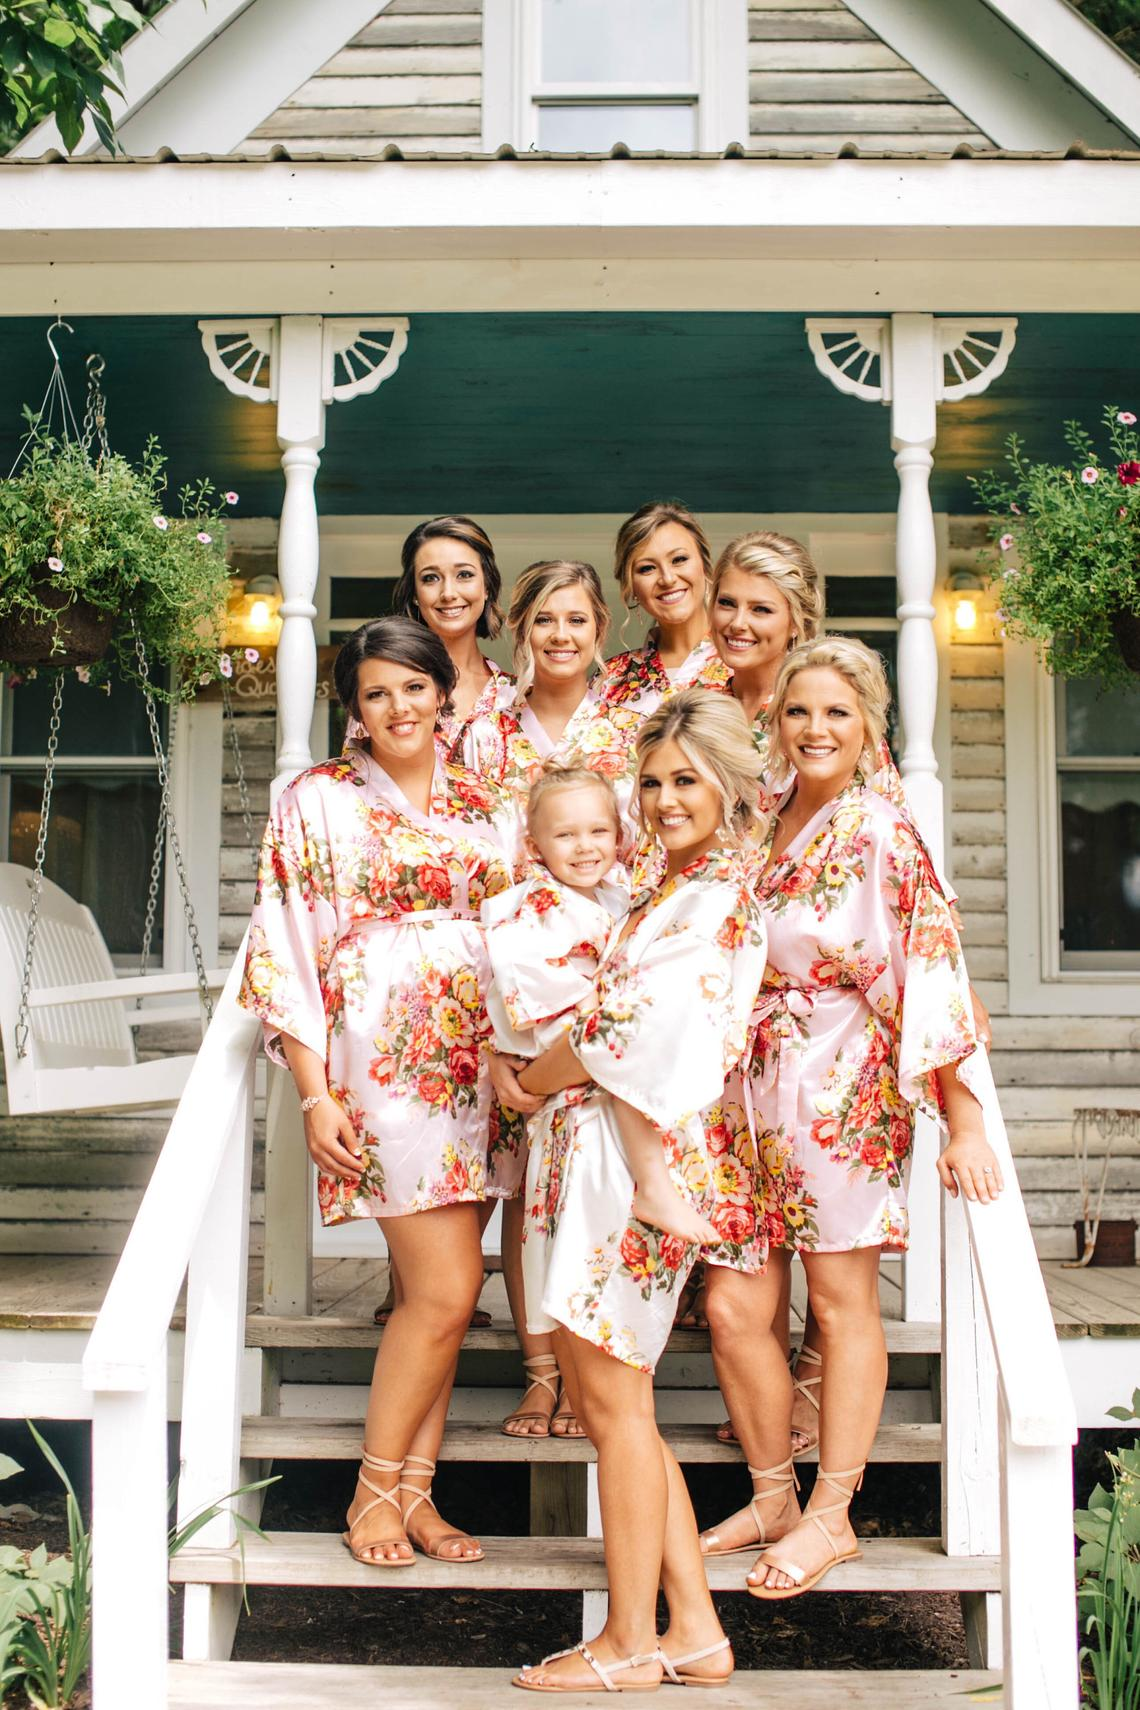 Bridesmaid Robes Set.jpg